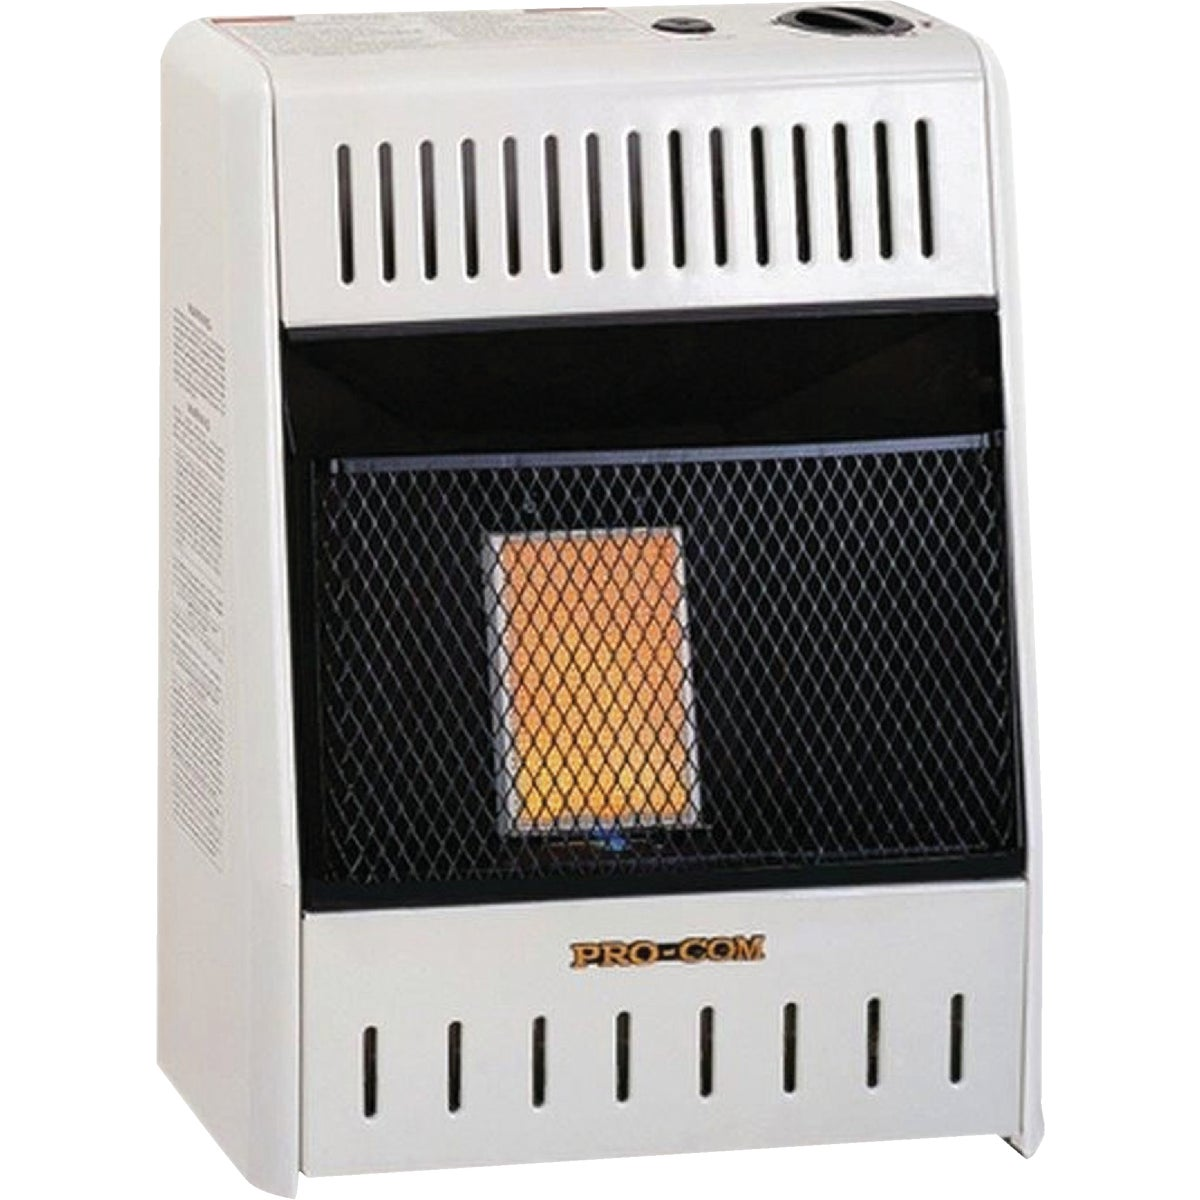 6K IR MAN NG GAS HEATER